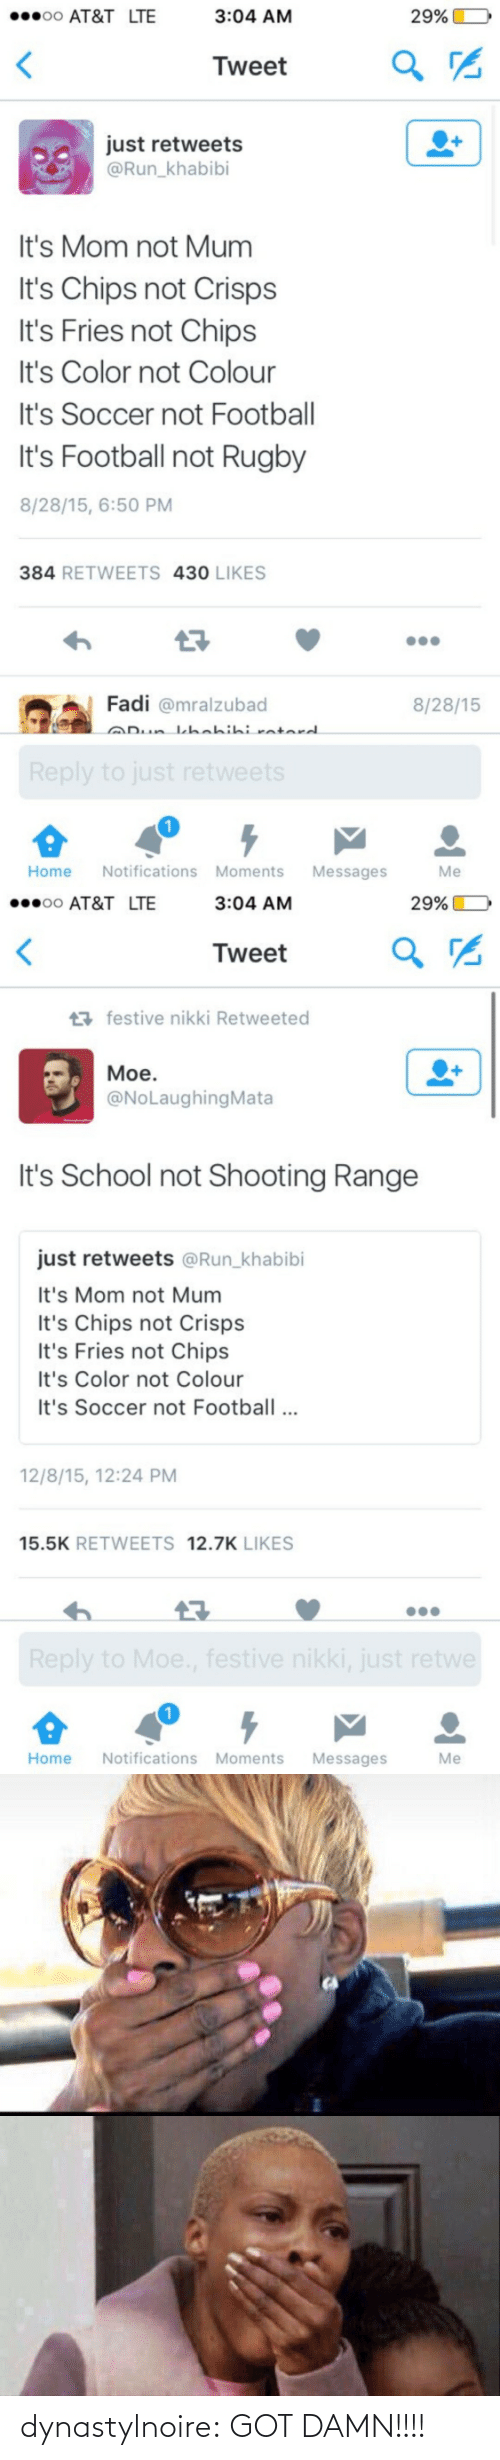 Rugby: oo AT&T LTE  3:04 AM  29%)  o  Tweet  a  just retweets  @Run khabibi  It's Mom not Mum  It's Chips not Crisps  It's Fries not Chips  It's Color not Colour  It's Soccer not Football  It's Football not Rugby  8/28/15, 6:50 PM  384 RETWEETS 430 LIKES  Fadi @mralzubad  8/28/15  Home Notifications Moments Messages  Me   oo AT&T LTE  3:04 AM  29%)  o  Tweet  a  festive nikki Retweeted  Moe.  @NoLaughingMata  It's School not Shooting Range  just retweets @Run_khabibi  It's Mom not Mum  It's Chips not Crisps  It's Fries not Chips  It's Color not Colour  It's Soccer not Footbal  12/8/15, 12:24 PM  15.5K RETWEETS 12.7K LIKES  Home Notifications Moments Messages  Me dynastylnoire:   GOT DAMN!!!!